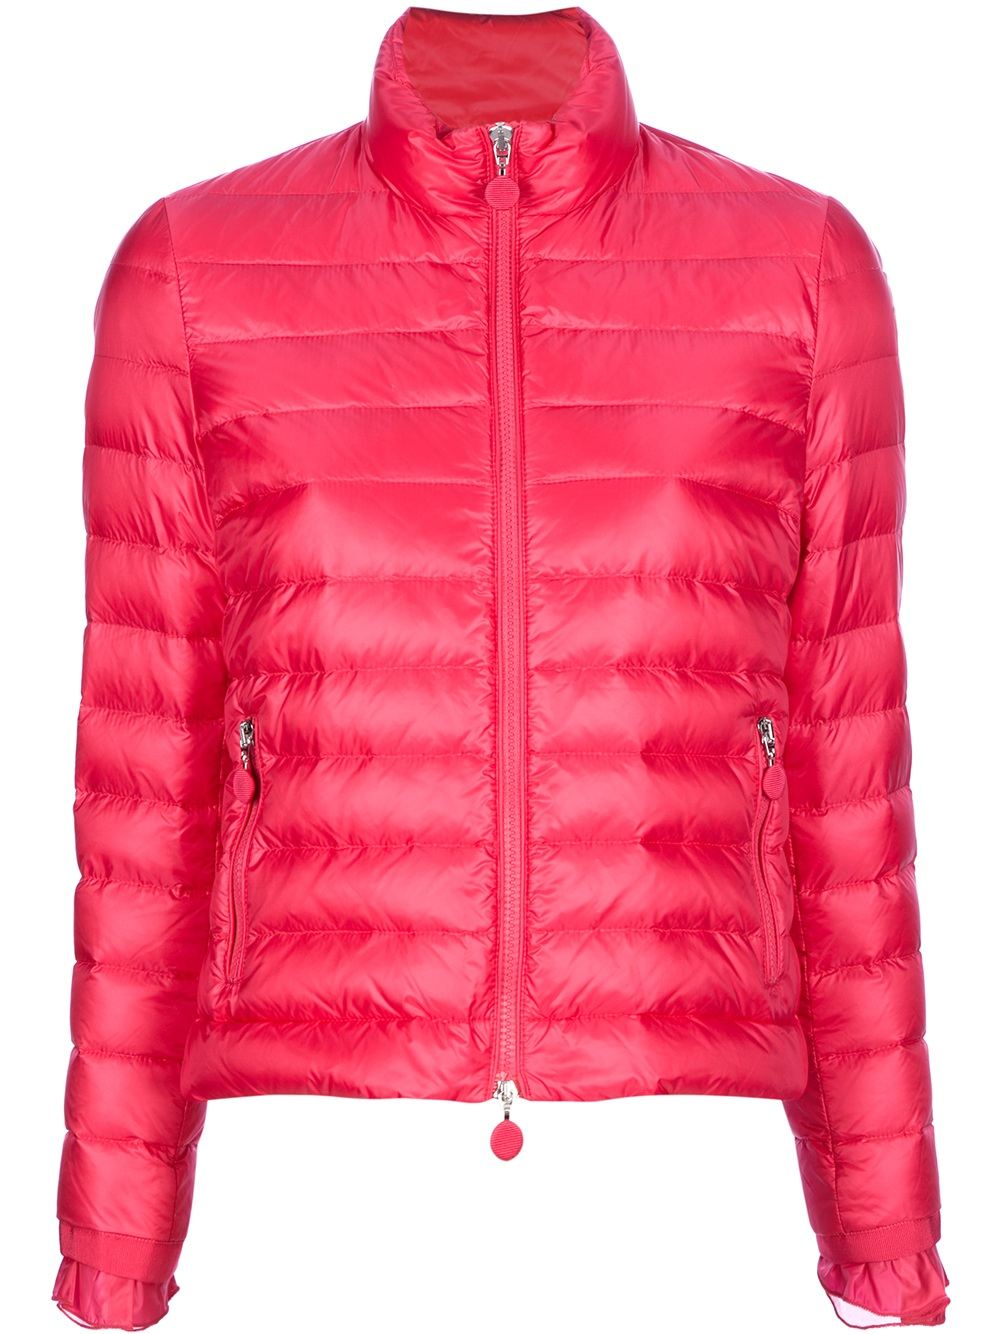 Pink North Face Jacket